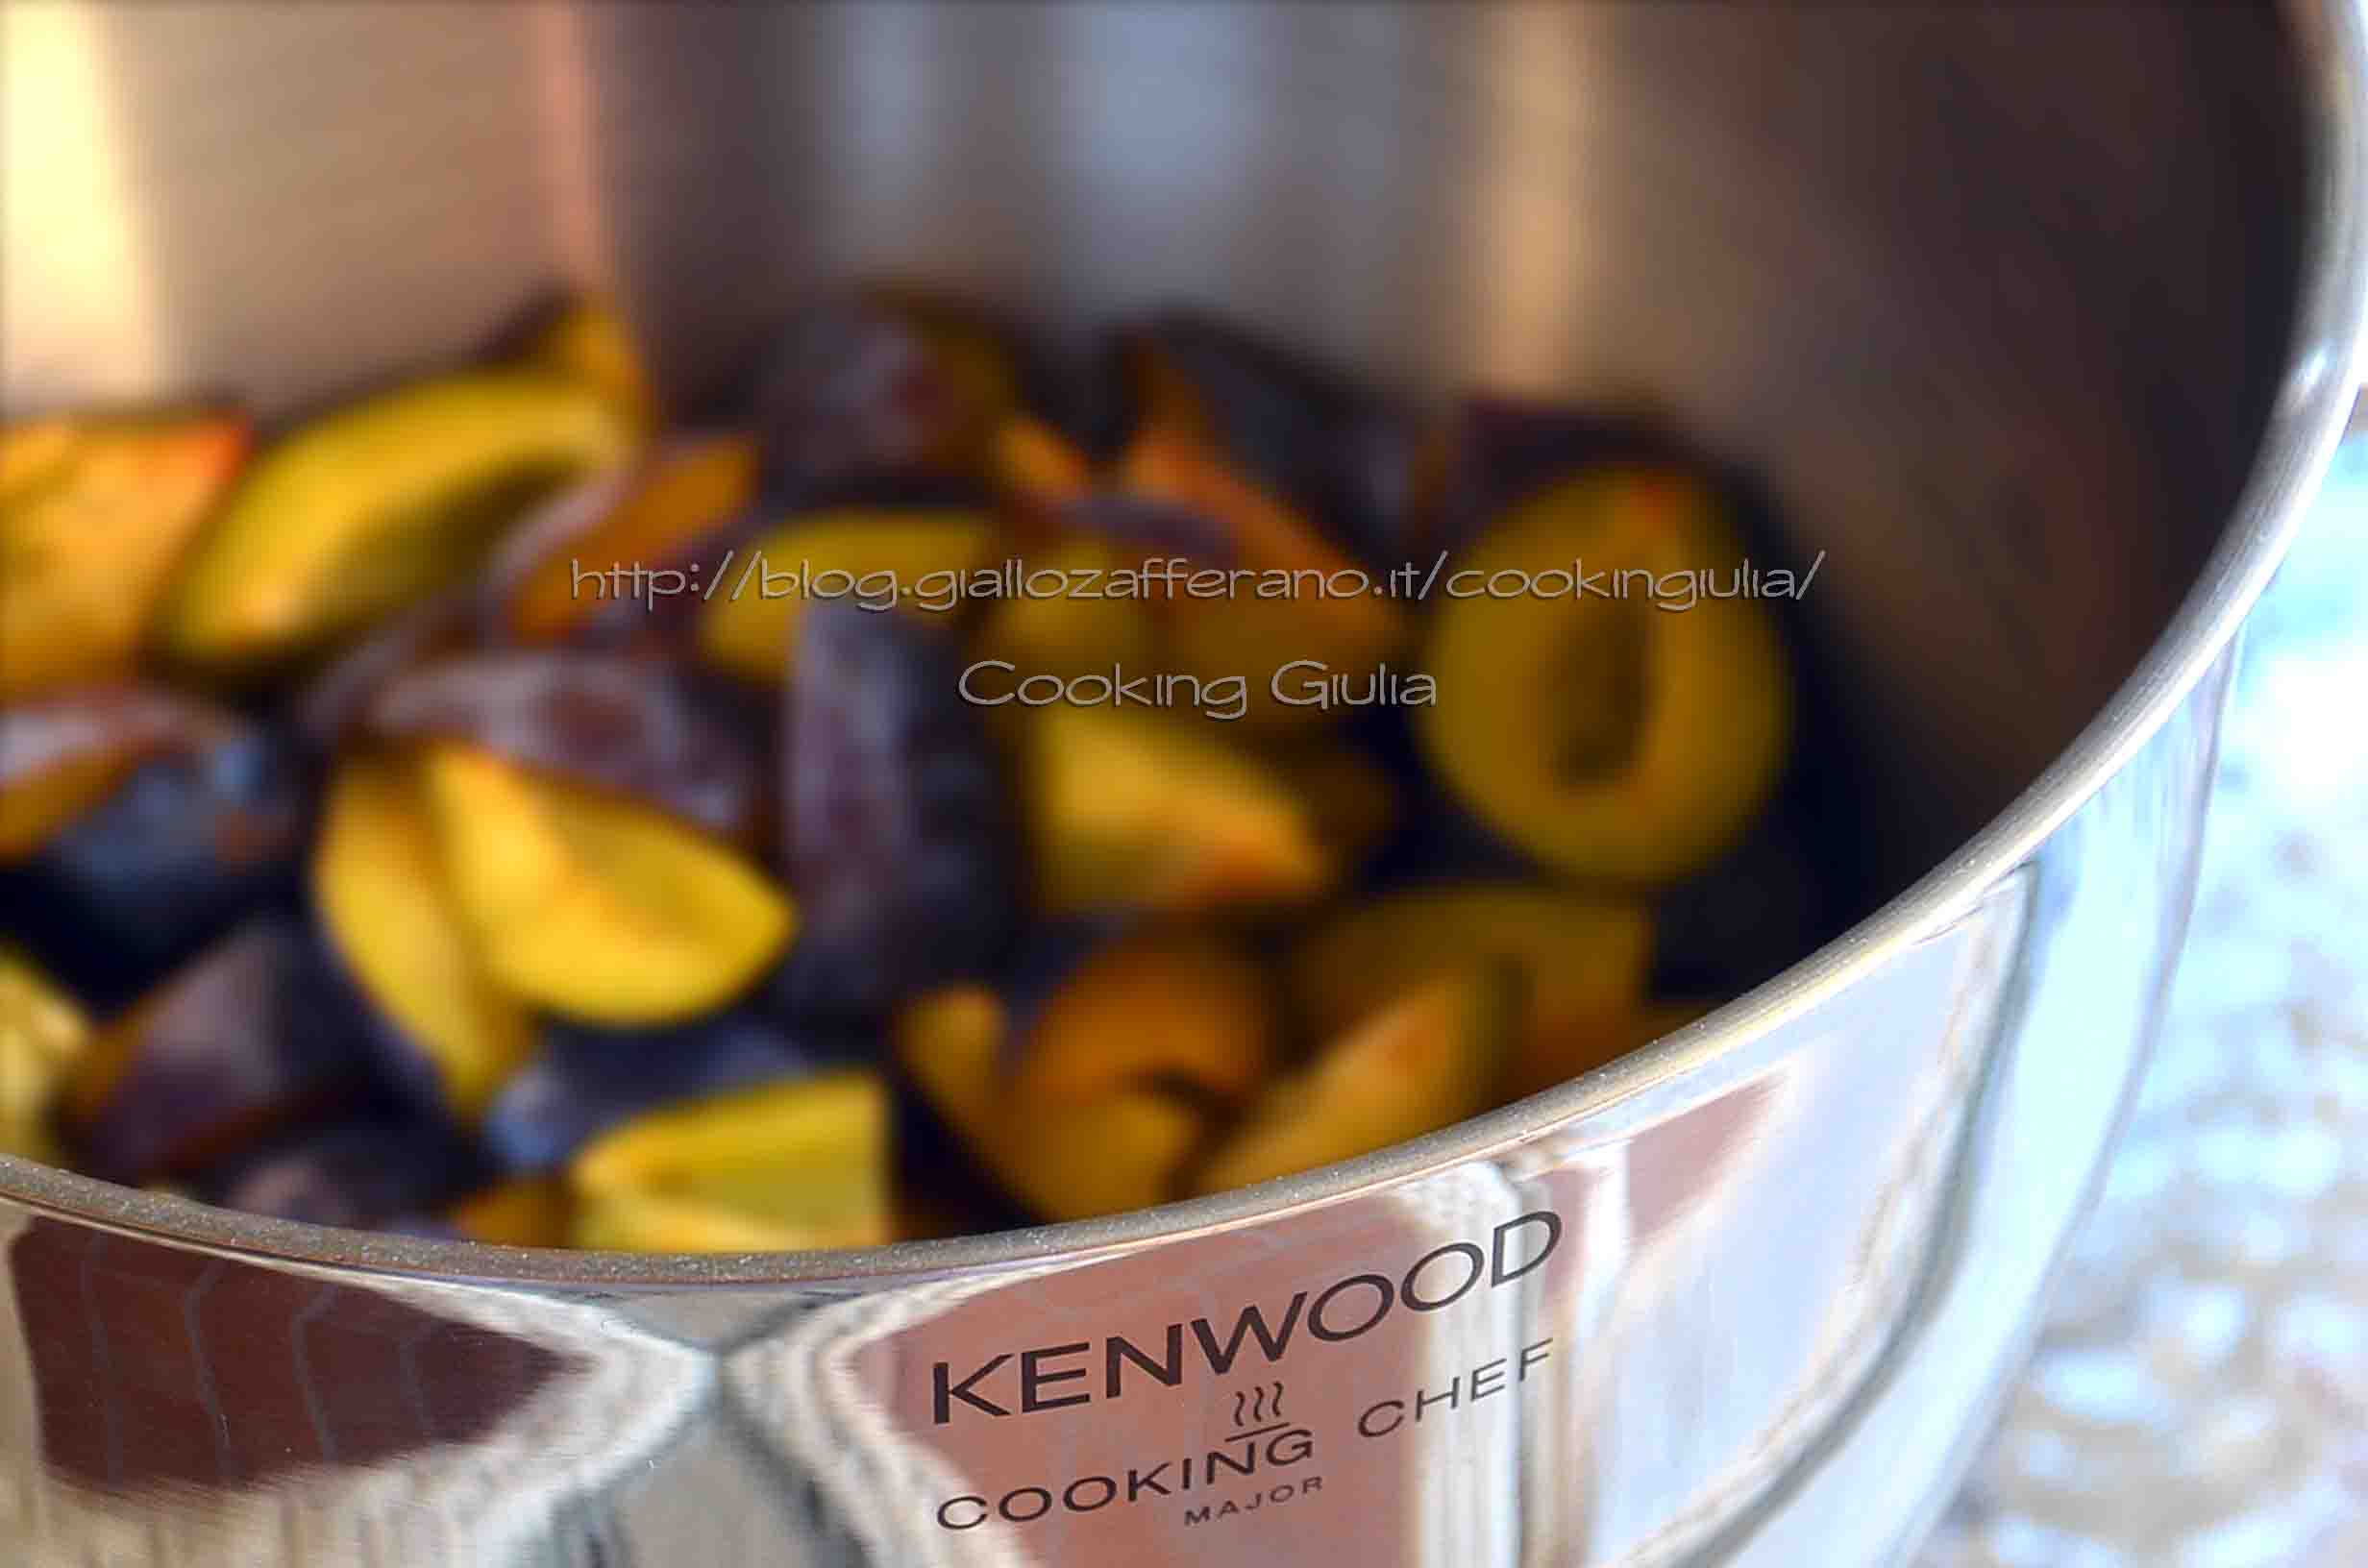 Beautiful Cucinare Con Kenwood Cooking Chef Photos - Ideas & Design ...